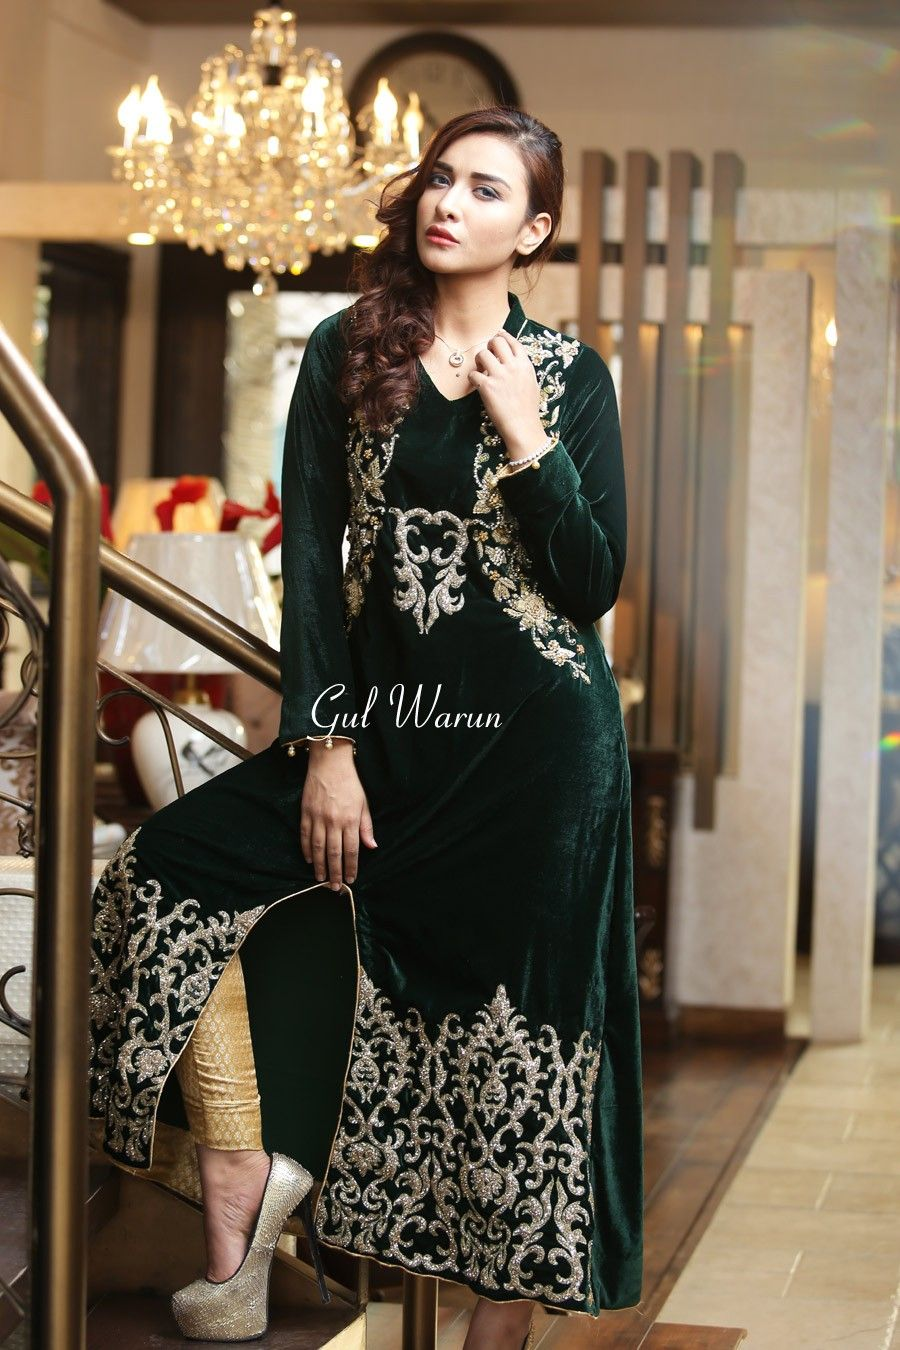 ef52049bee Pakistani Designer Dresses - Lowest Prices - Green Velvet Hand Embroidered  and Applique dress by Gul Warun - Dresses - Latest Pakistani Fashion